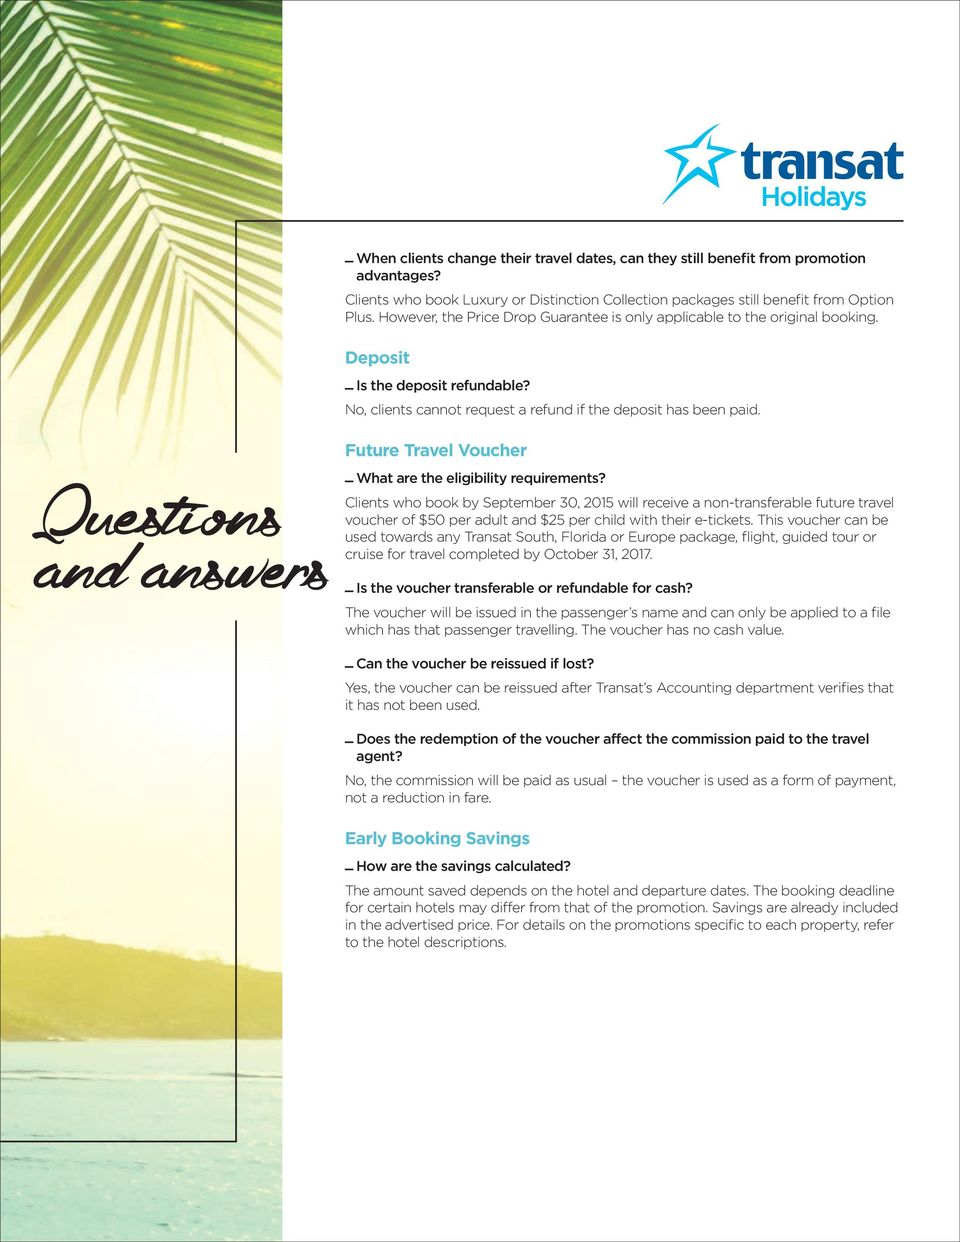 Future Travel Voucher _ What are the eligibility requirements?